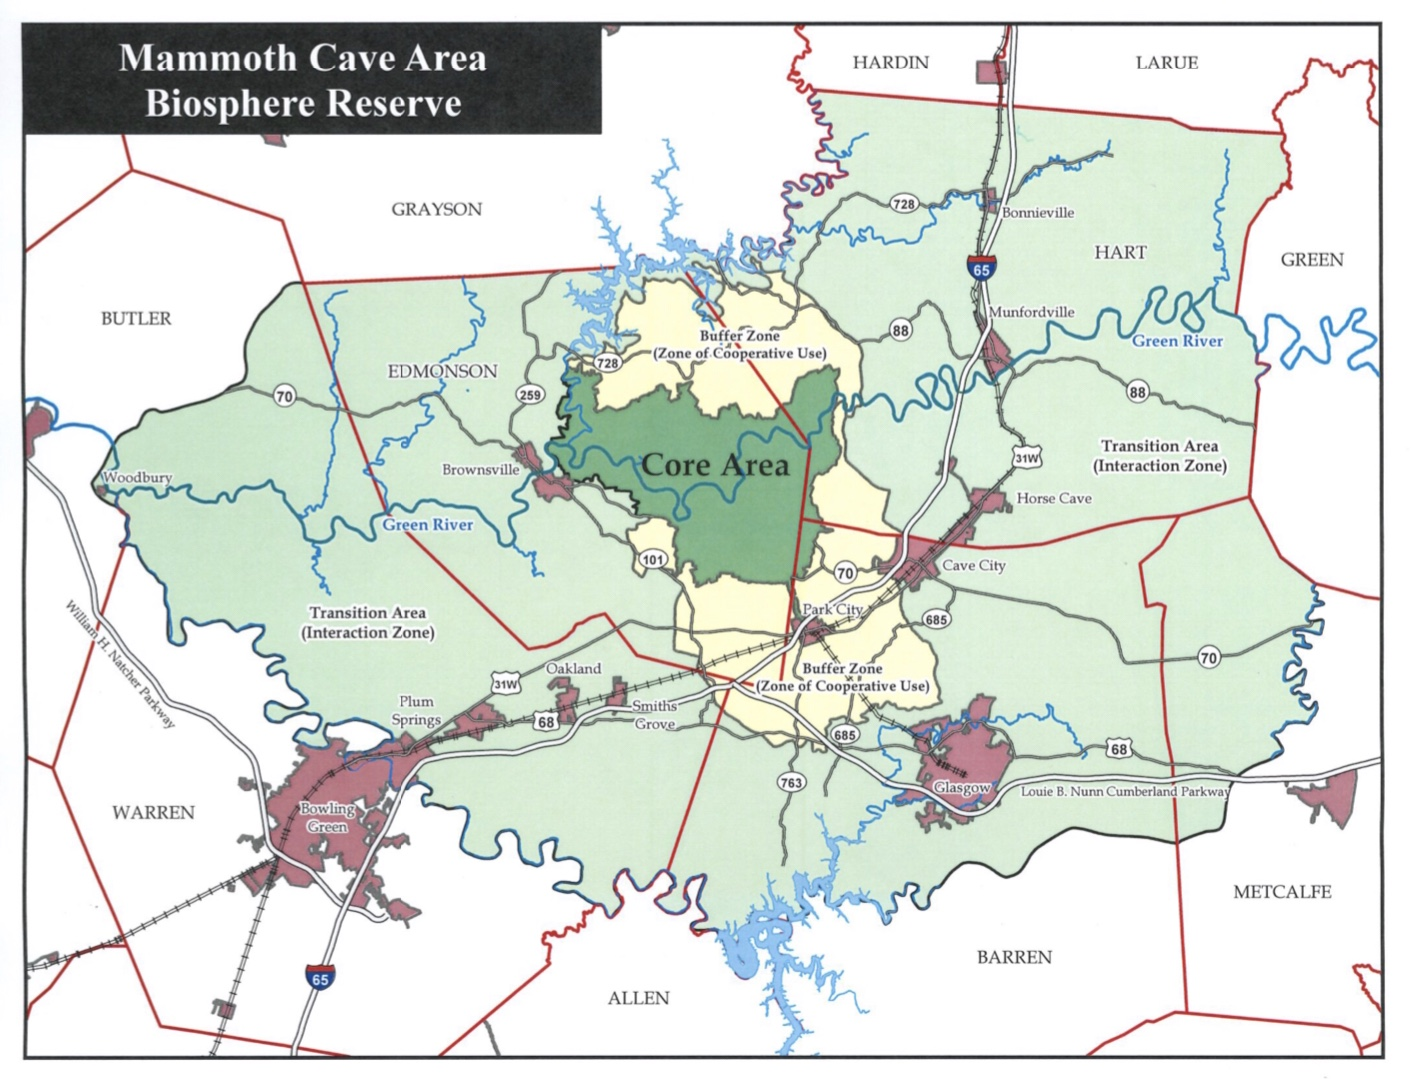 Mammoth Cave Area Biosphere Reserve on i 65 kentucky map, mammoth trail map, smiths grove ky map, wind cave national park map, loretto ky map, kentucky caves map, mammoth az map, indiana caves map, adolphus ky map, mammoth on a map, ledbetter ky map, mannsville ky map, cave city map, mammoth campground, streets of covington ky map, mayking ky map, cave run lake ky map, blank ky map, mcveigh ky map, rowan county ky map,